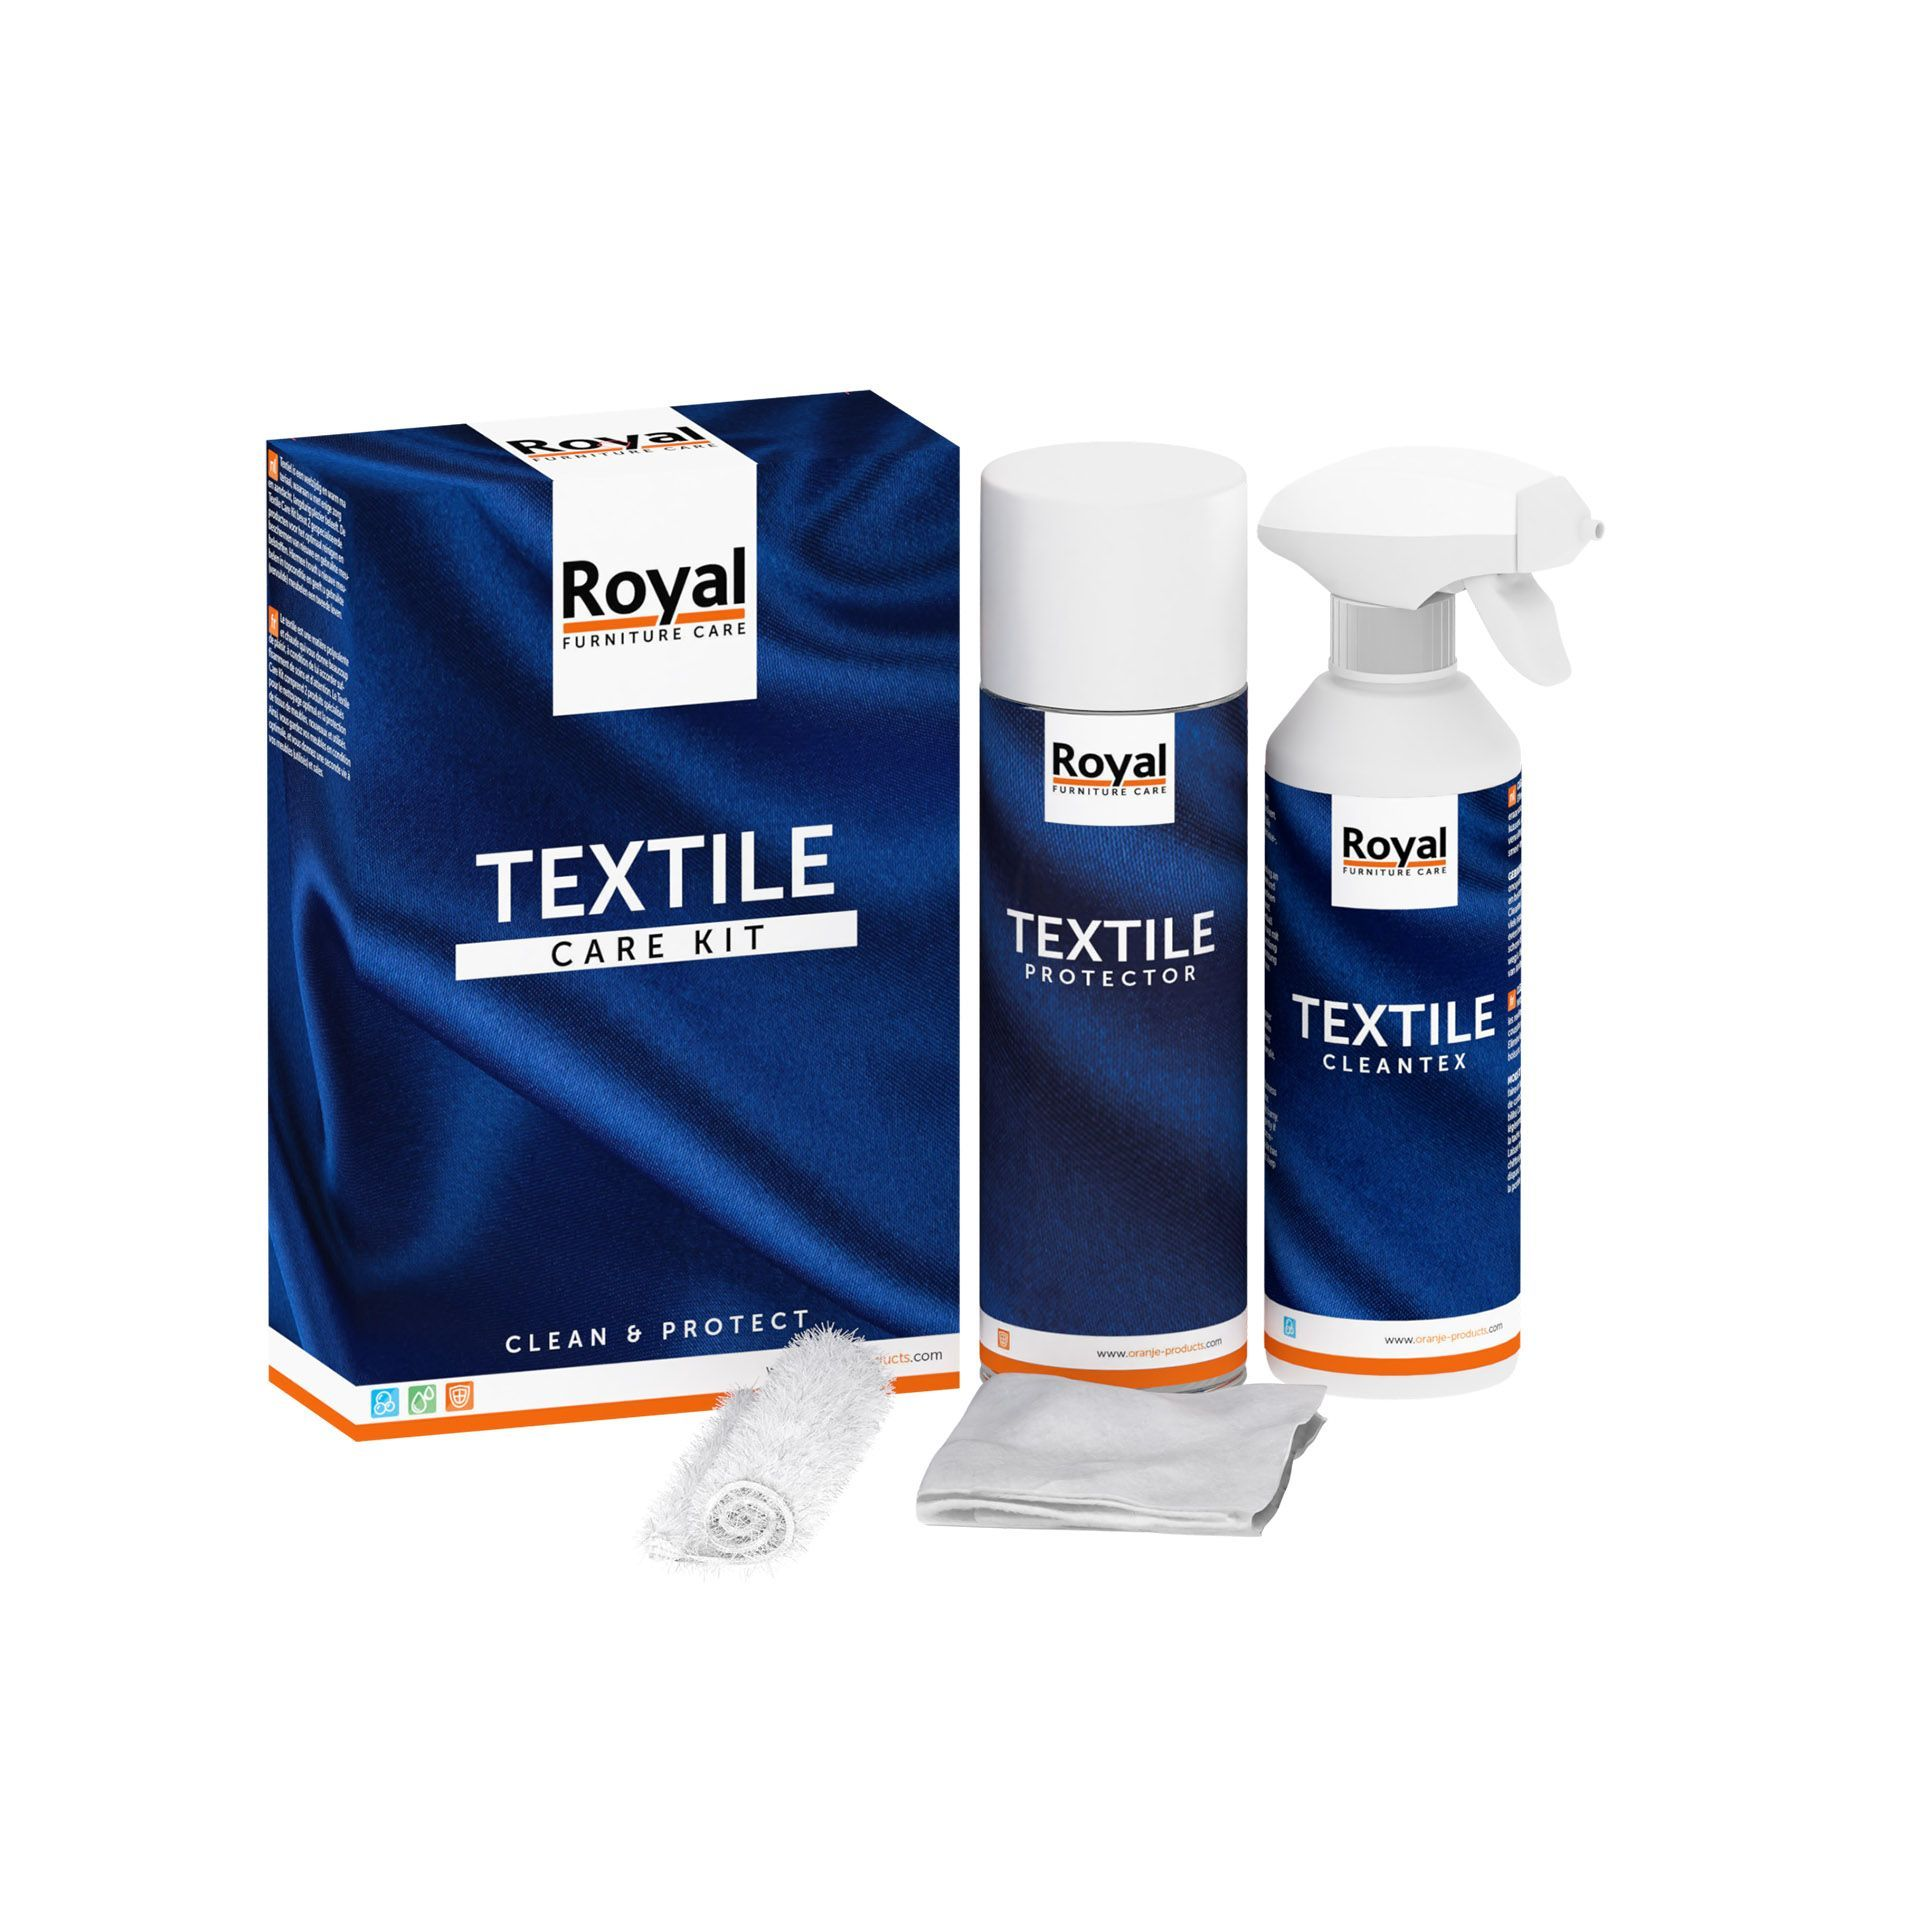 Textile Care Kit - Clean & Protect